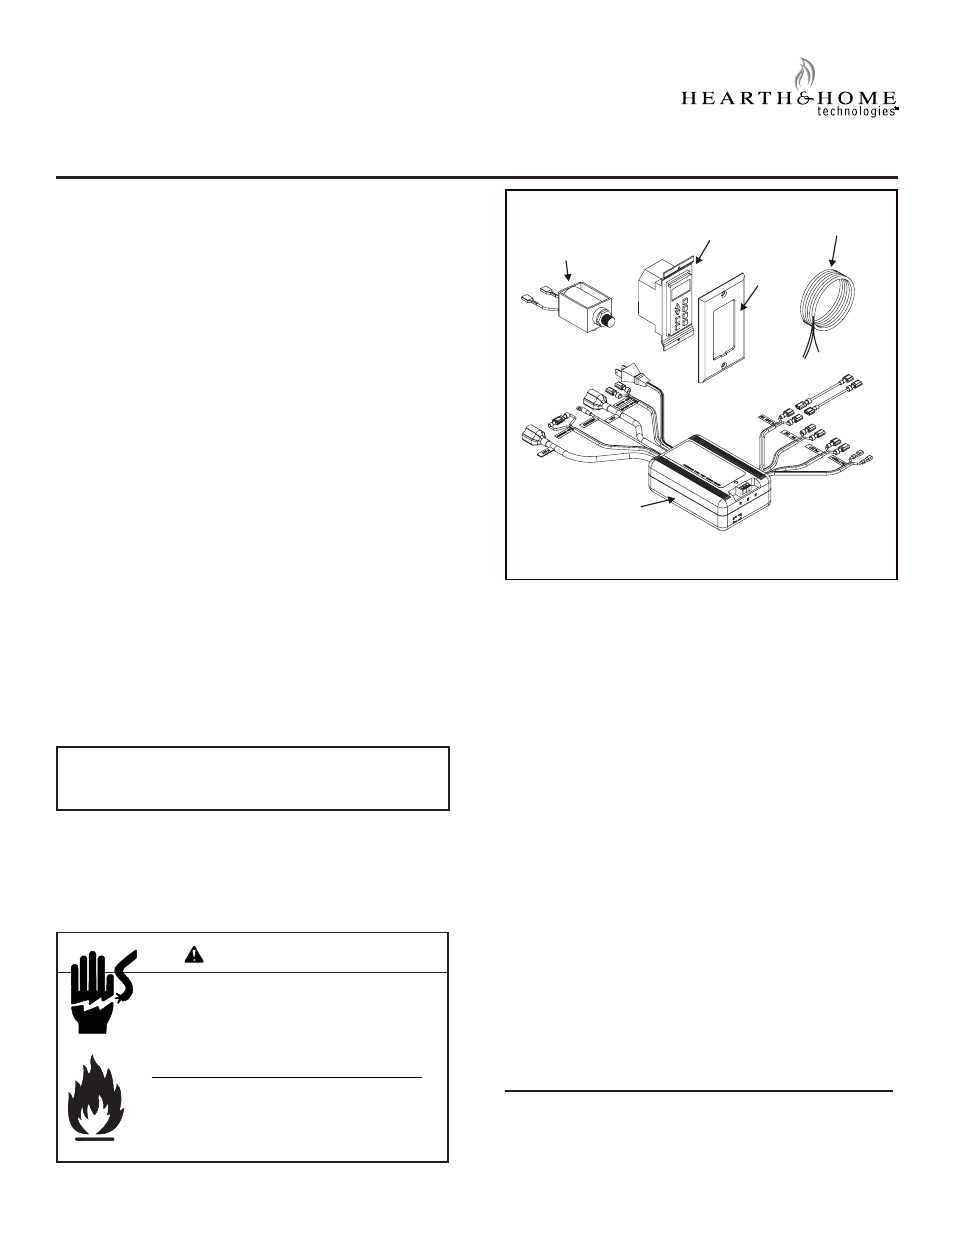 Hearth And Home Technologies Wsk Mlt User Manual 7 Pages